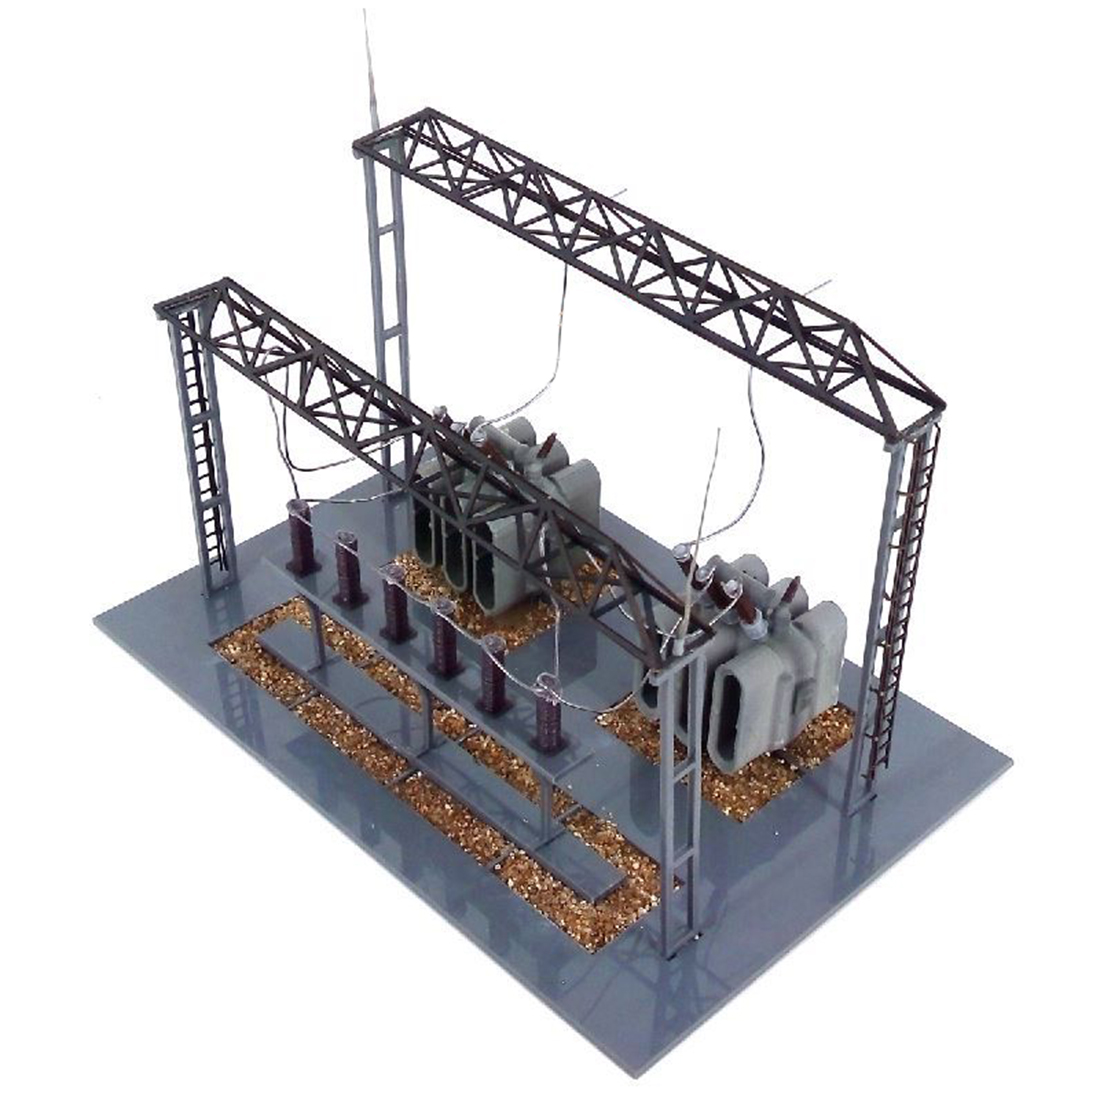 1:87 HO Scale Train Model Substation Model For Sand Table